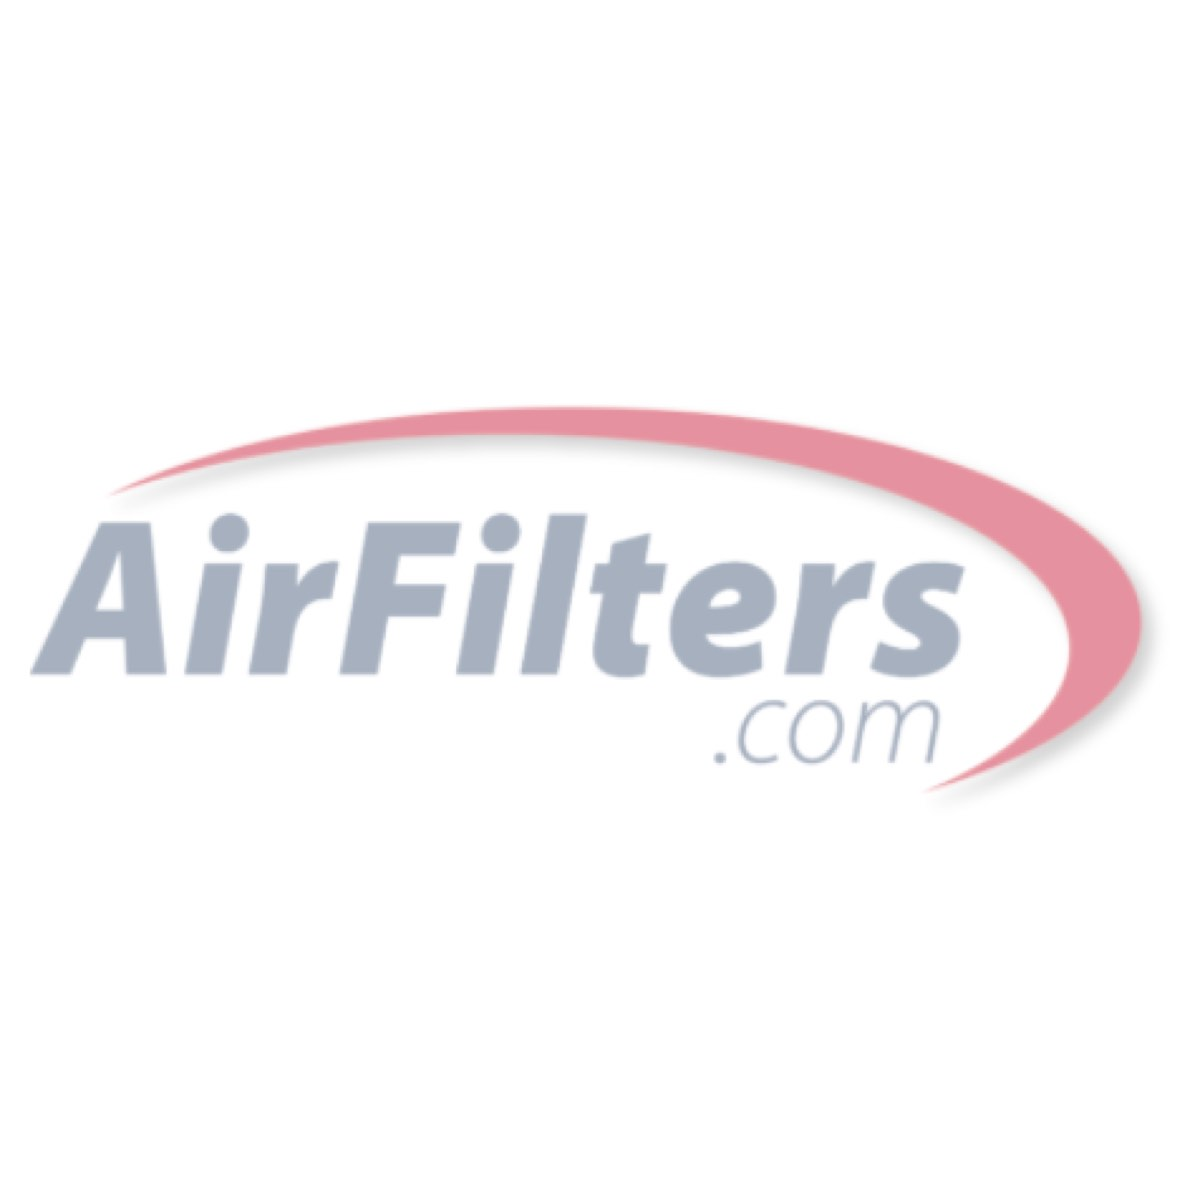 Carrier® FILCCFNC0014 Filters (12x20x4.25) by Accumulair®